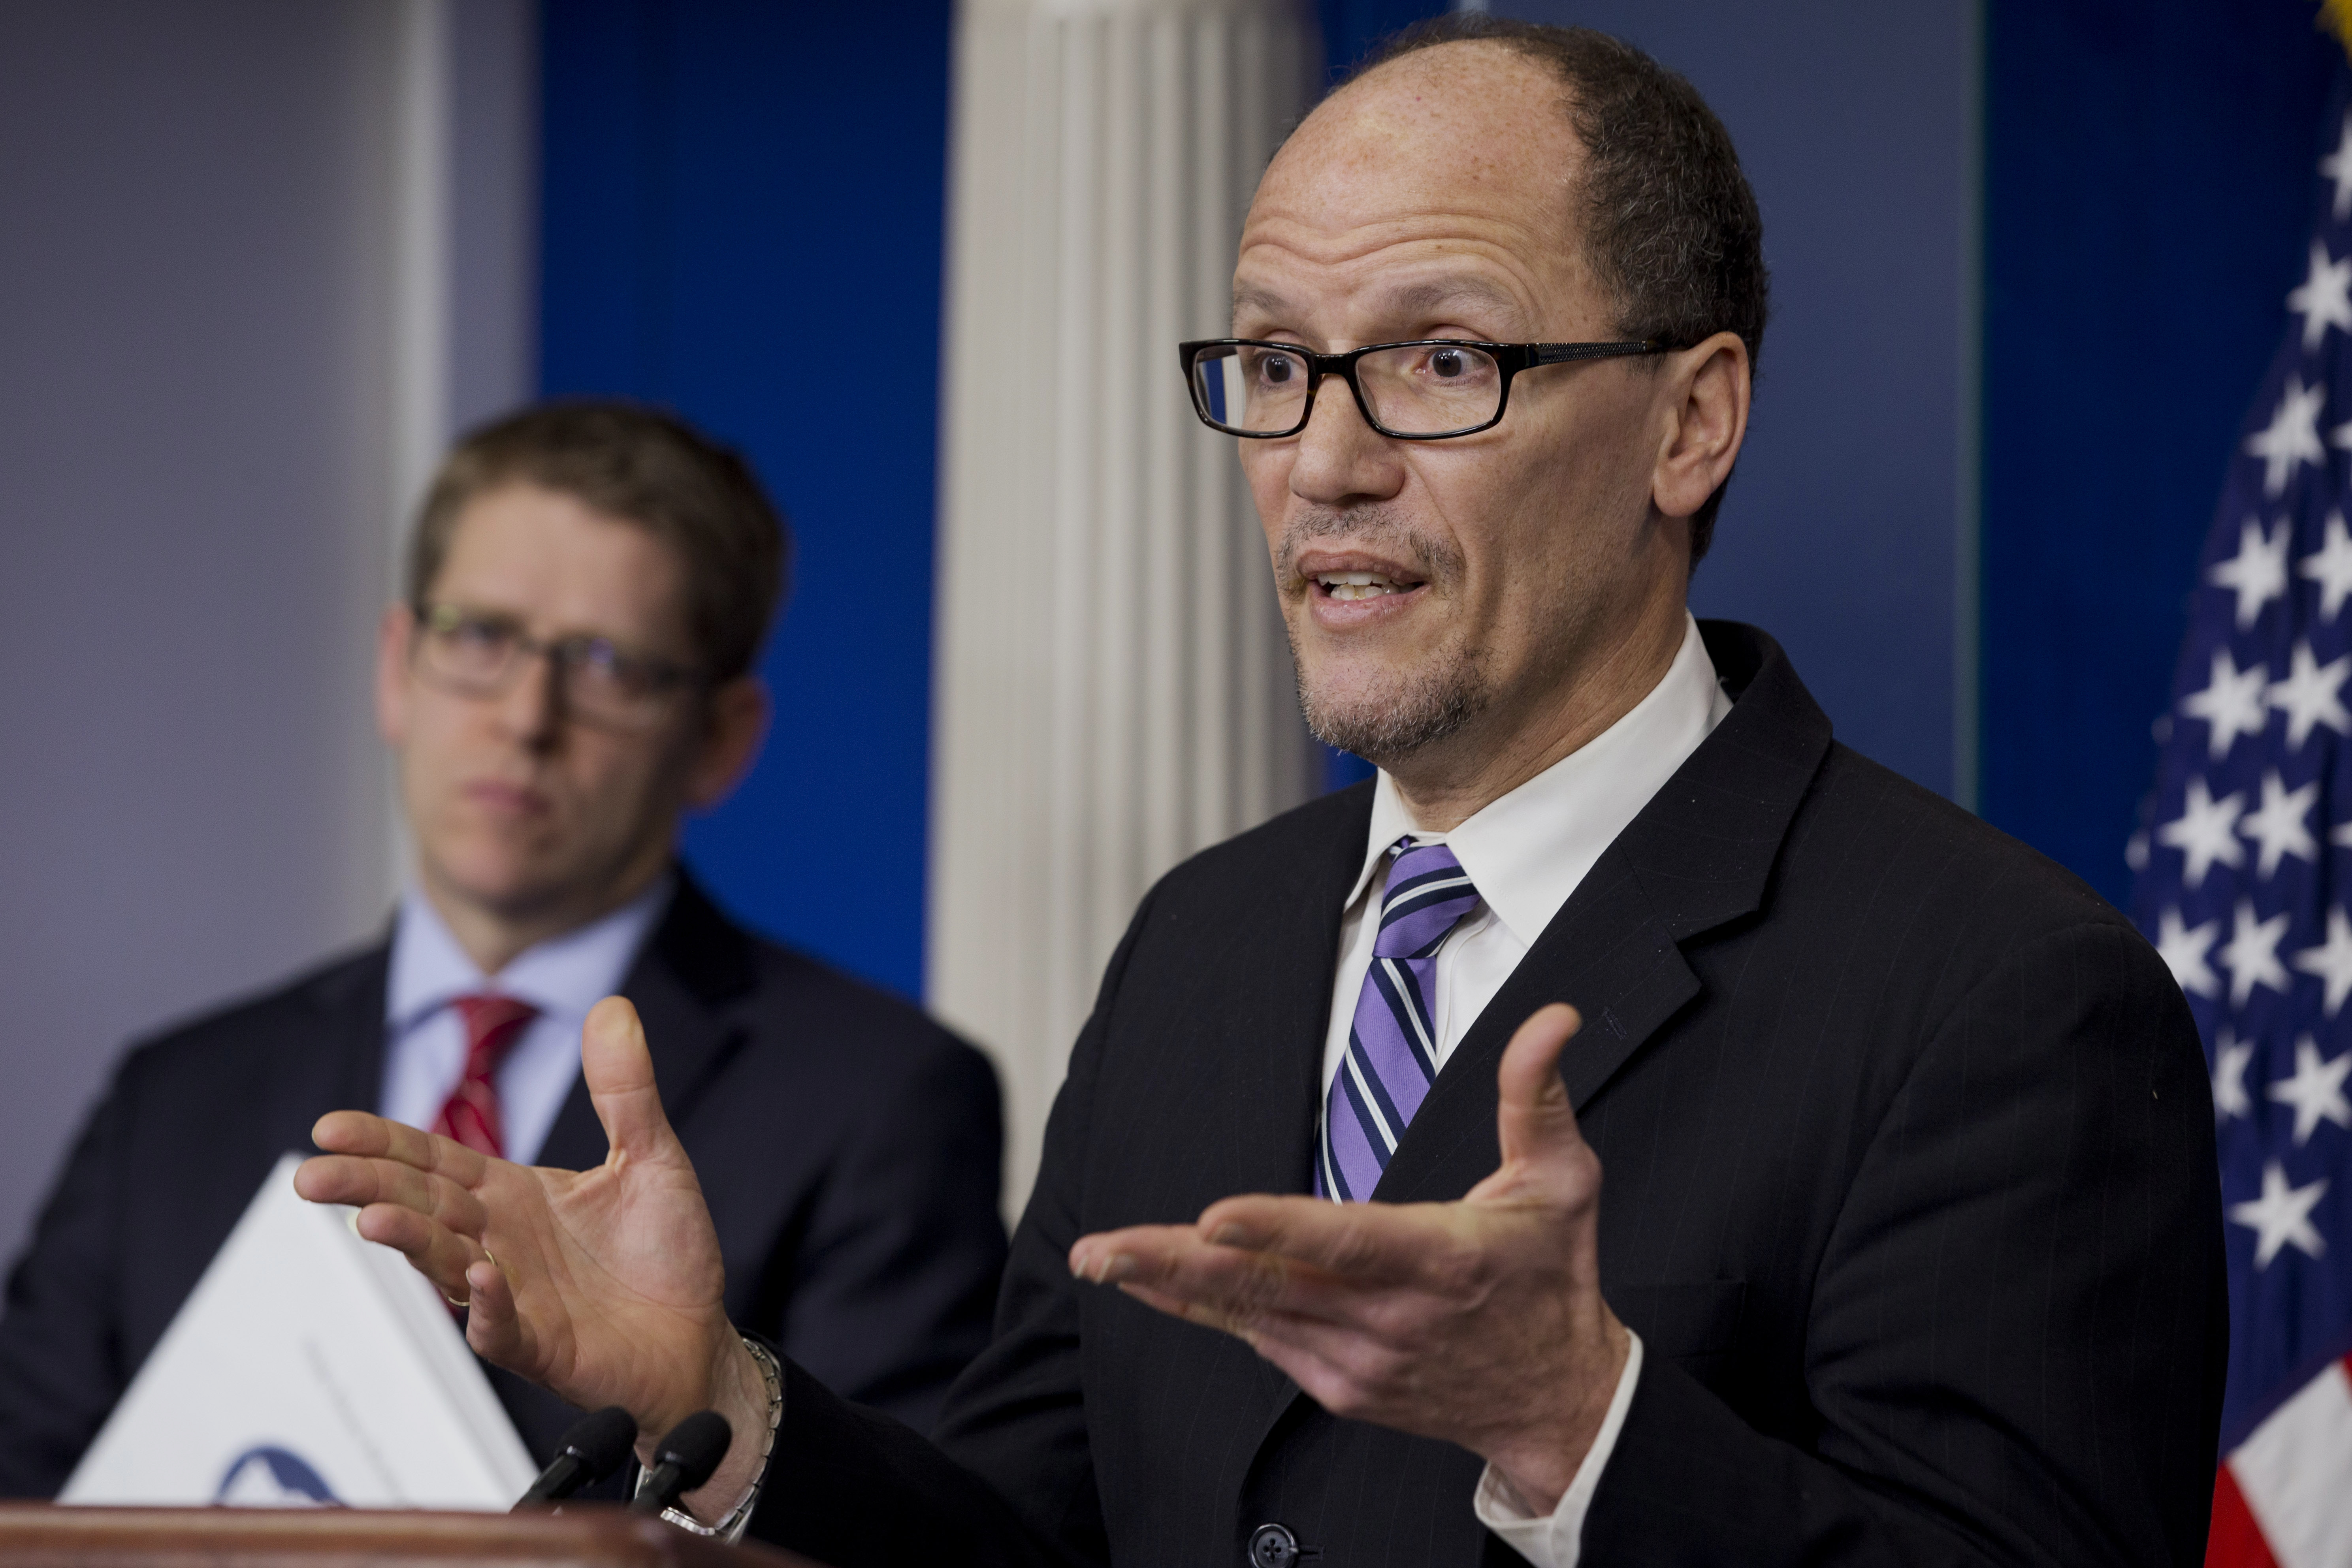 Labor Secretary Thomas Perez, right, accompanied by White House press secretary Jay Carney, speaks about the minimum wage increase for federal contract workers which will go into effect next year, Wednesday, Feb. 12, 2014, at the White House in Washington. (AP Photo/Jacquelyn Martin)